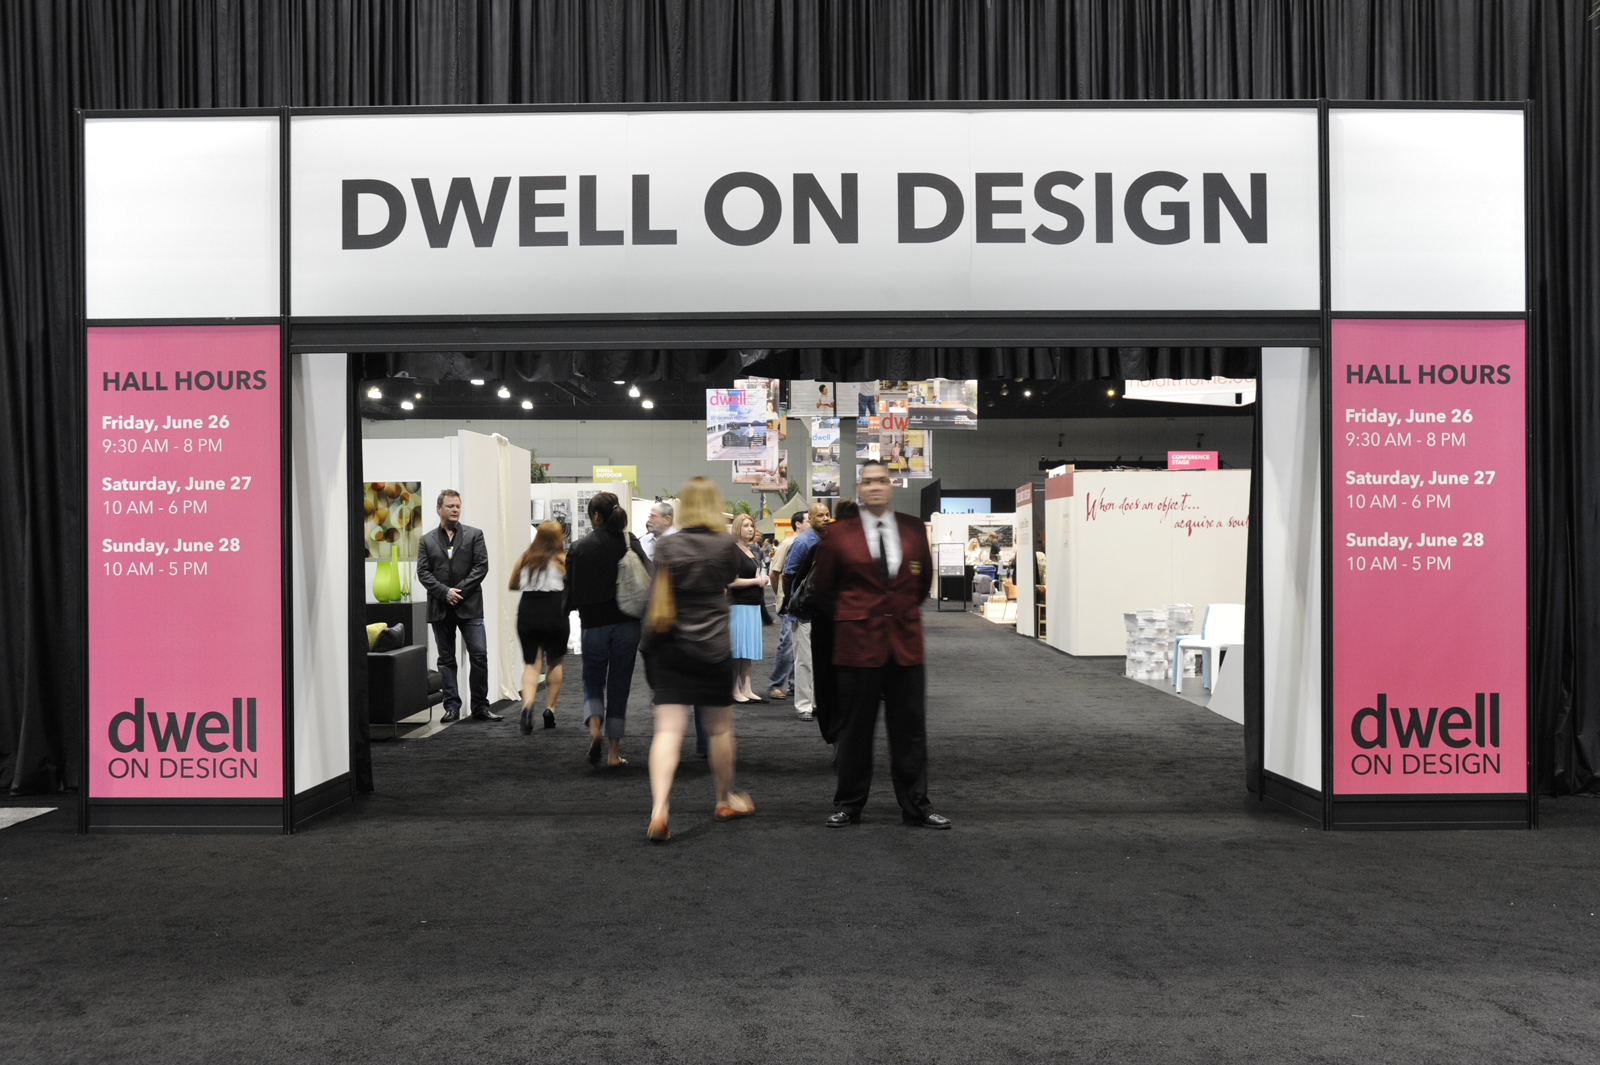 dwell on design exhibition entrance